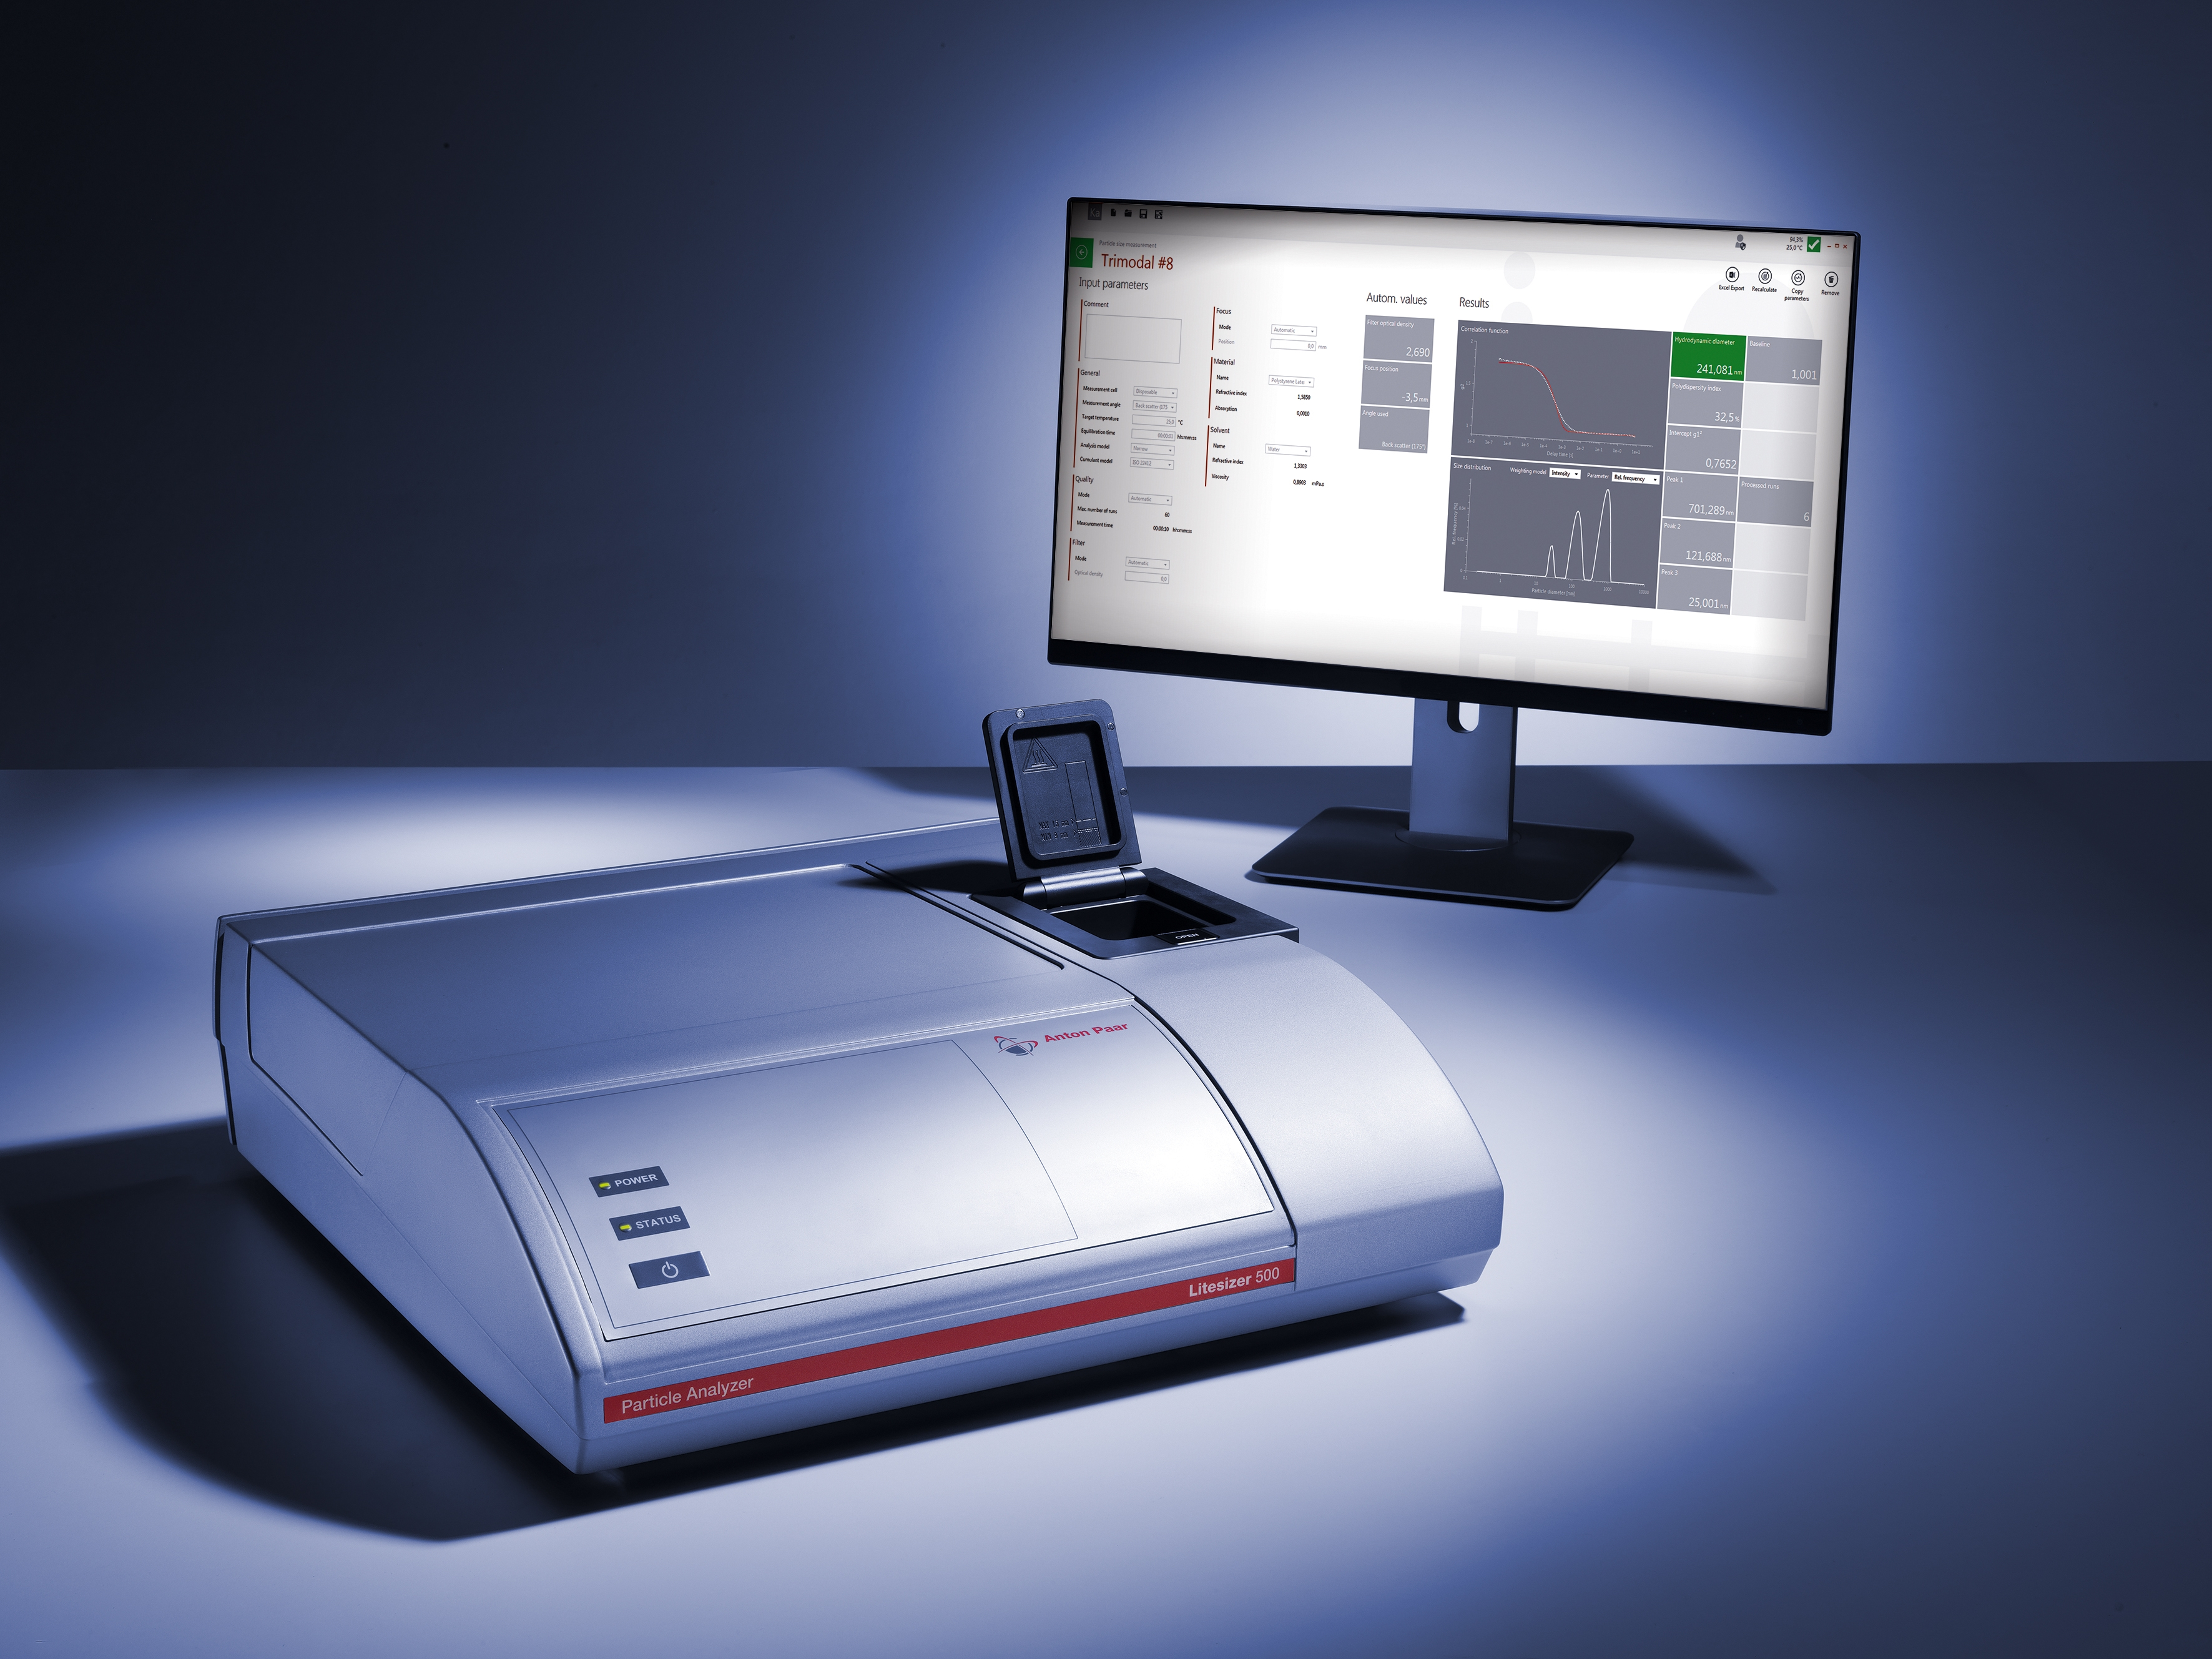 Litesizer™ Series: Particle Characterization by Anton Paar GmbH thumbnail